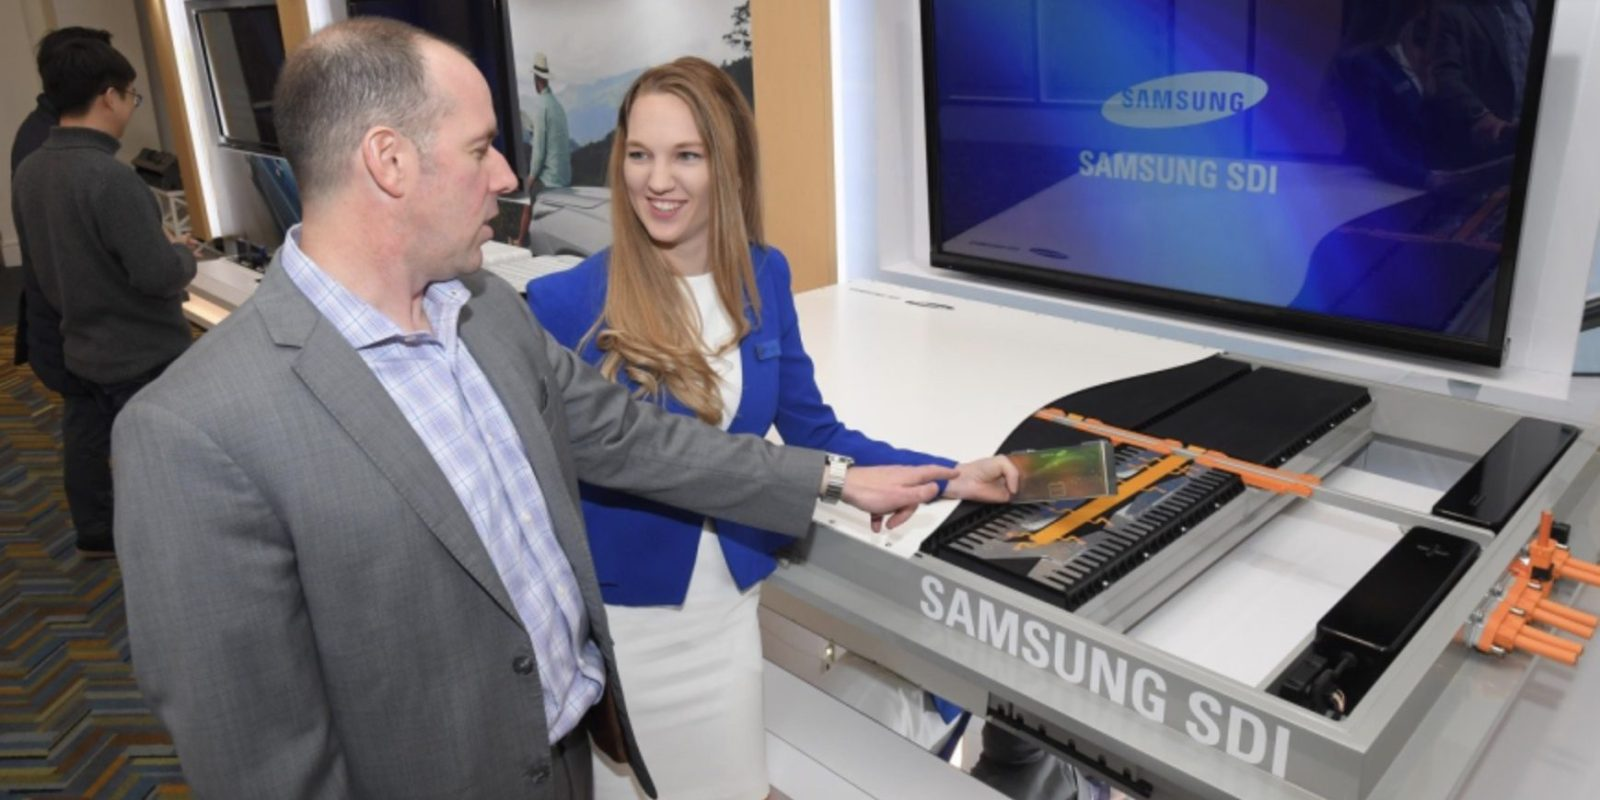 Samsung SDI unveils new batteries to increase electric car